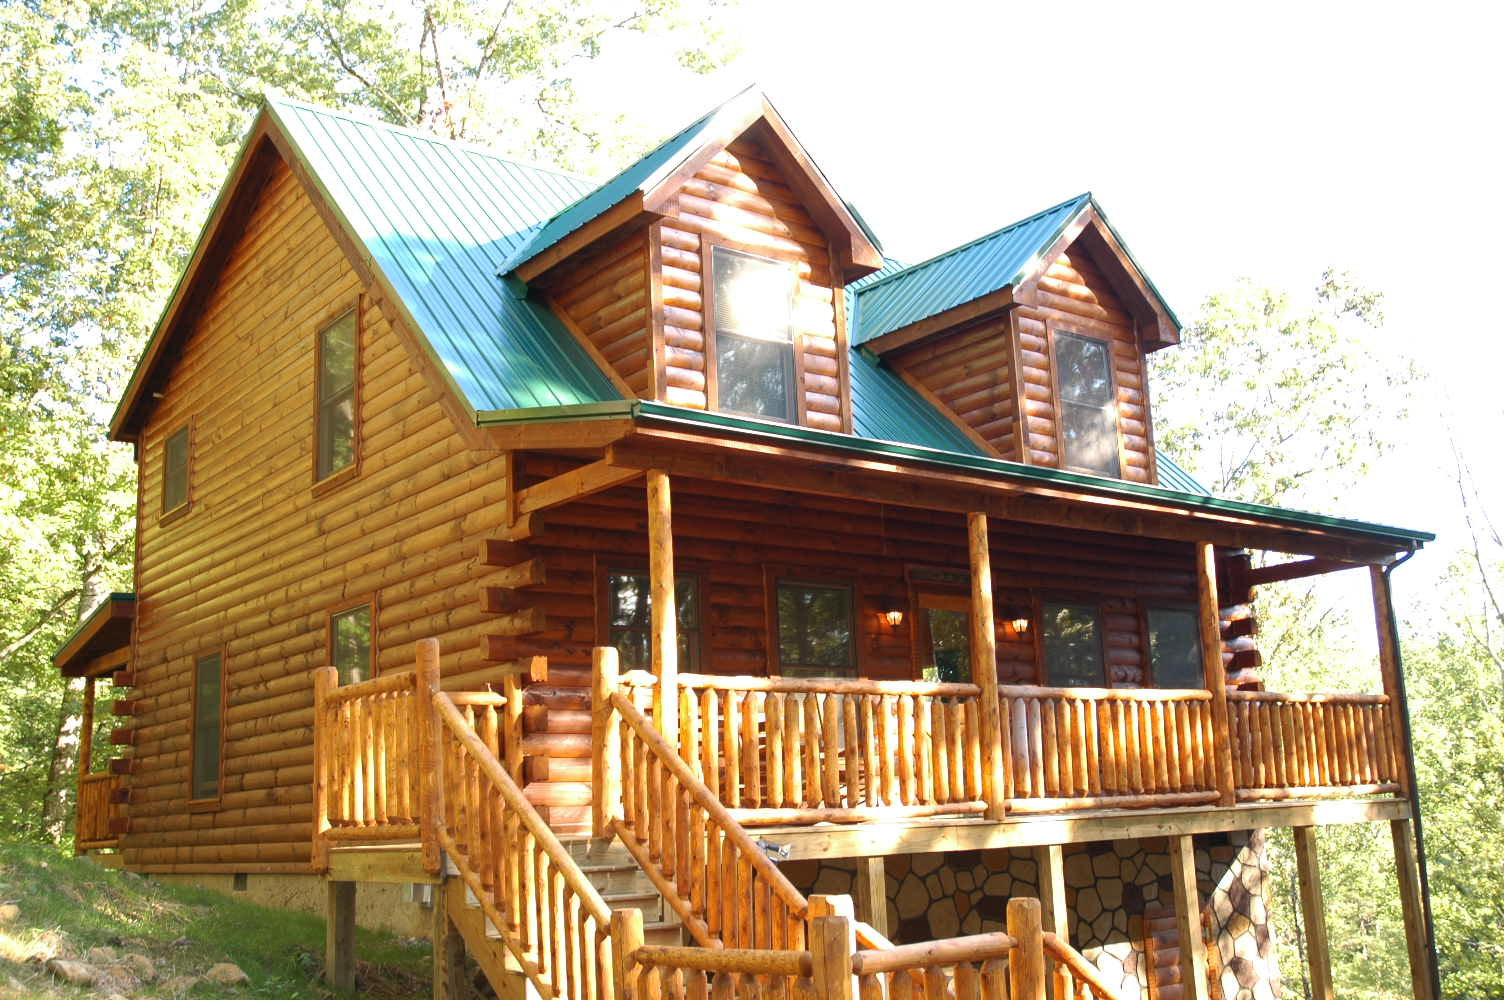 homes tn utah sale log s cabin decoratg for gatlinburg luxury cabins colorado maine home kits in